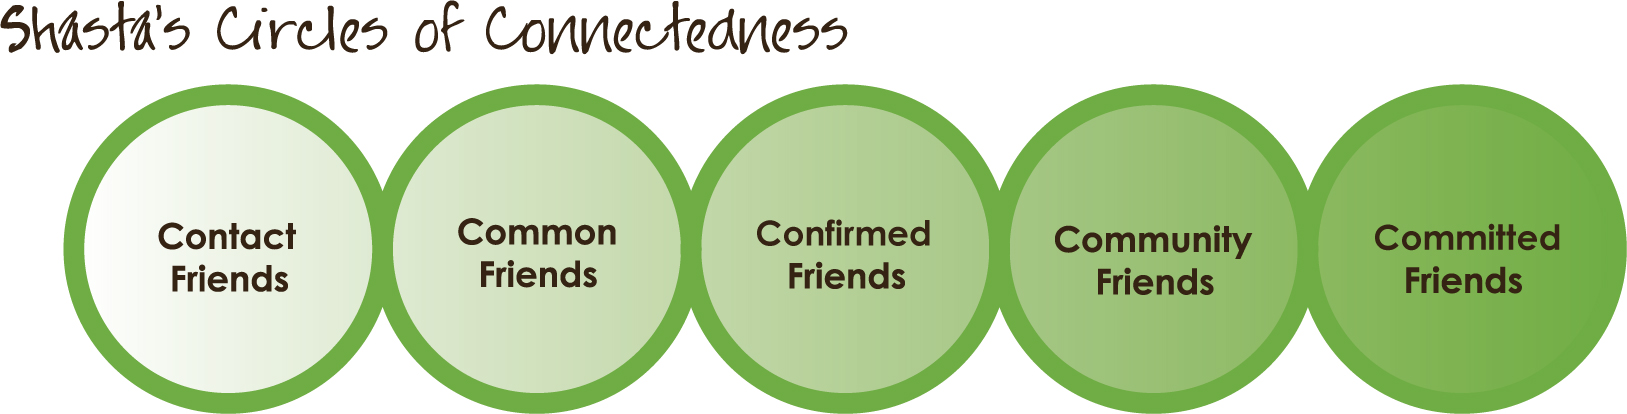 5 types of friends image